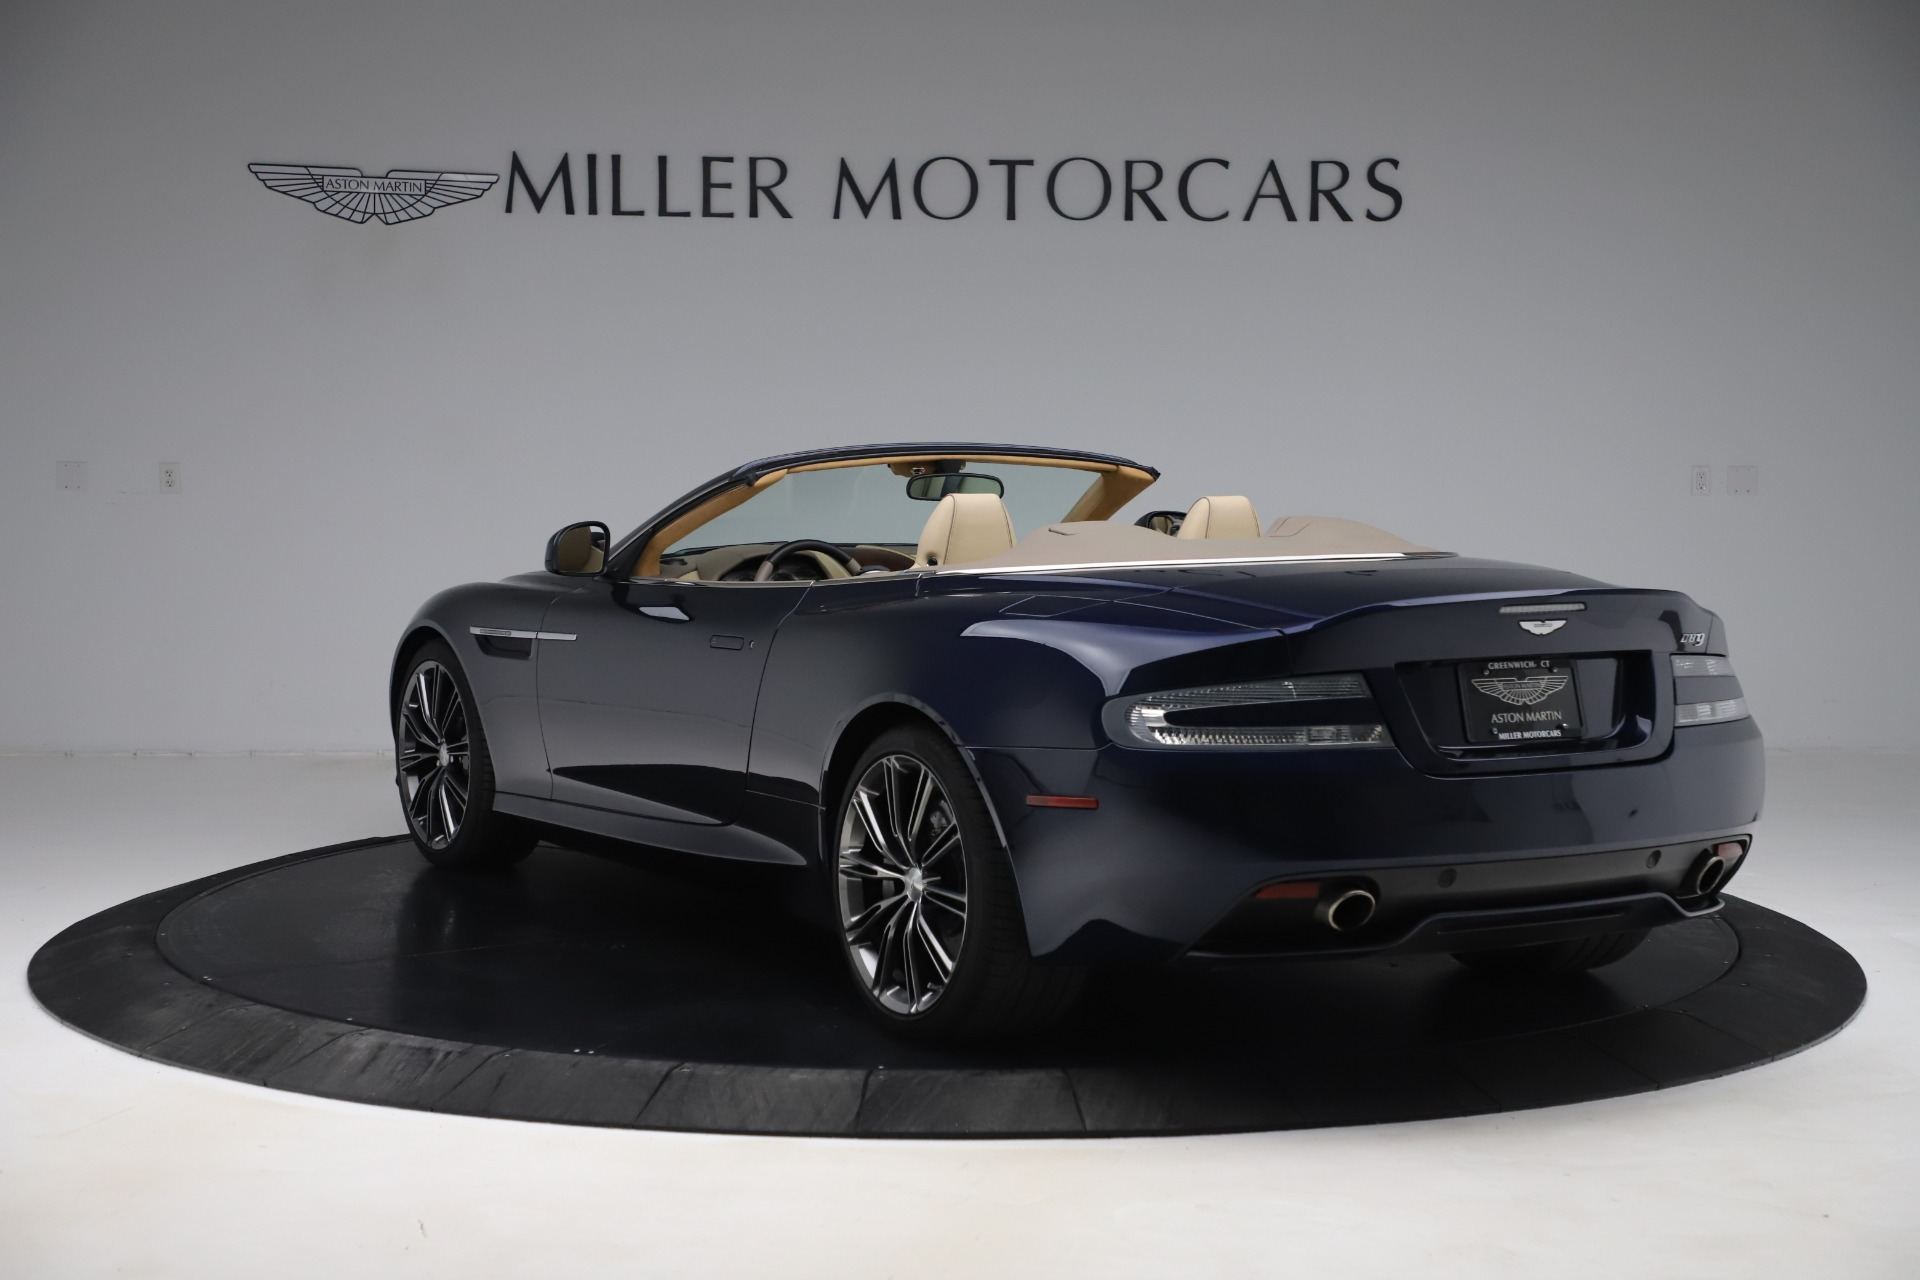 Used 2014 Aston Martin DB9 Volante For Sale In Westport, CT 3591_p5